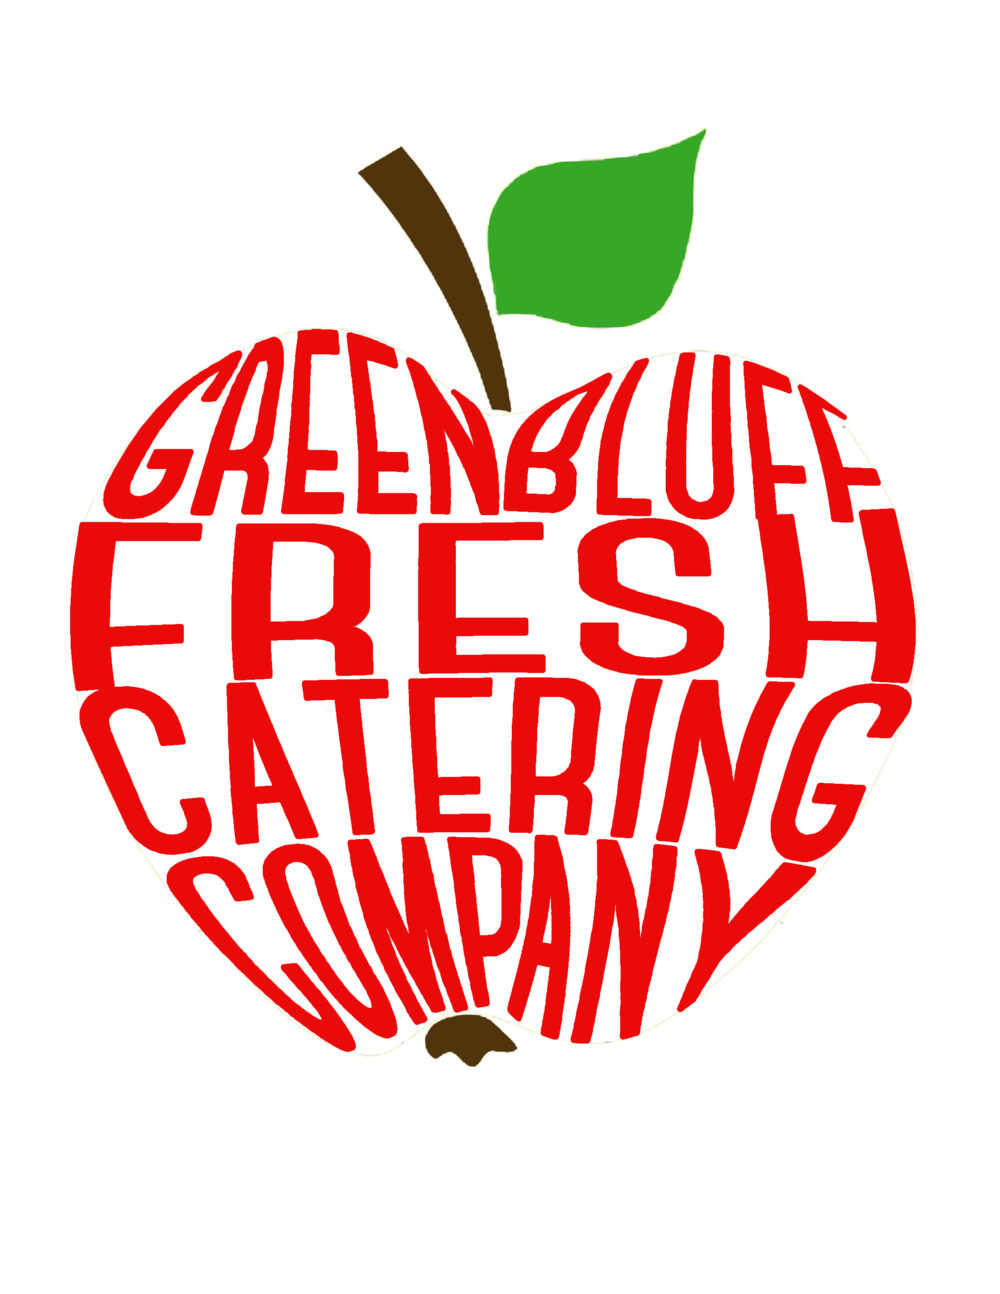 Apple dipped in honey clipart banner royalty free Greenbluff Fresh Catering Company- Servicing Spokane and North Idaho banner royalty free